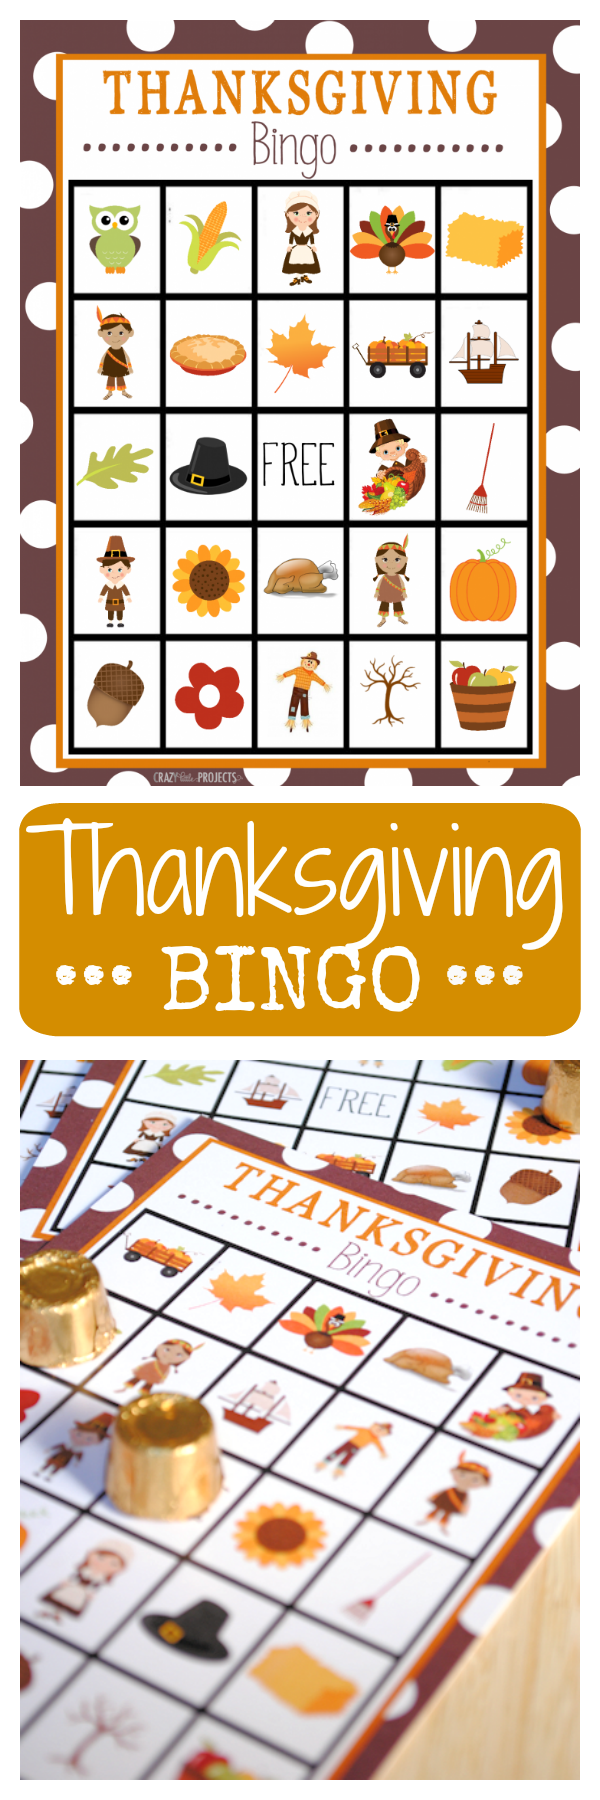 Free Printable Thanksgiving Bingo Game Cards